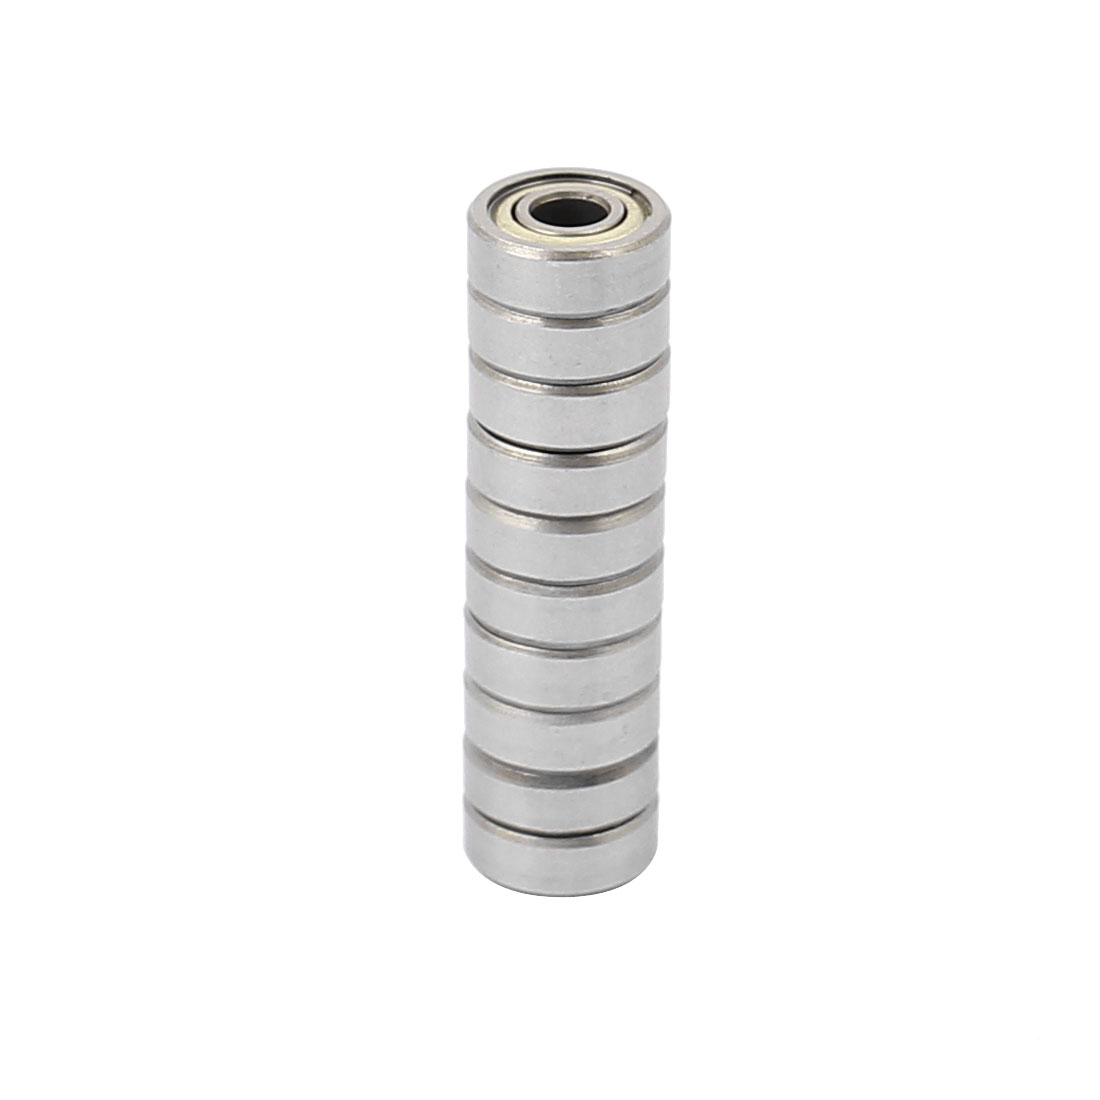 10pcs Metal Deep Groove Sealed Shielded Ball Bearing 4mmx11mmx4mm Silver Tone